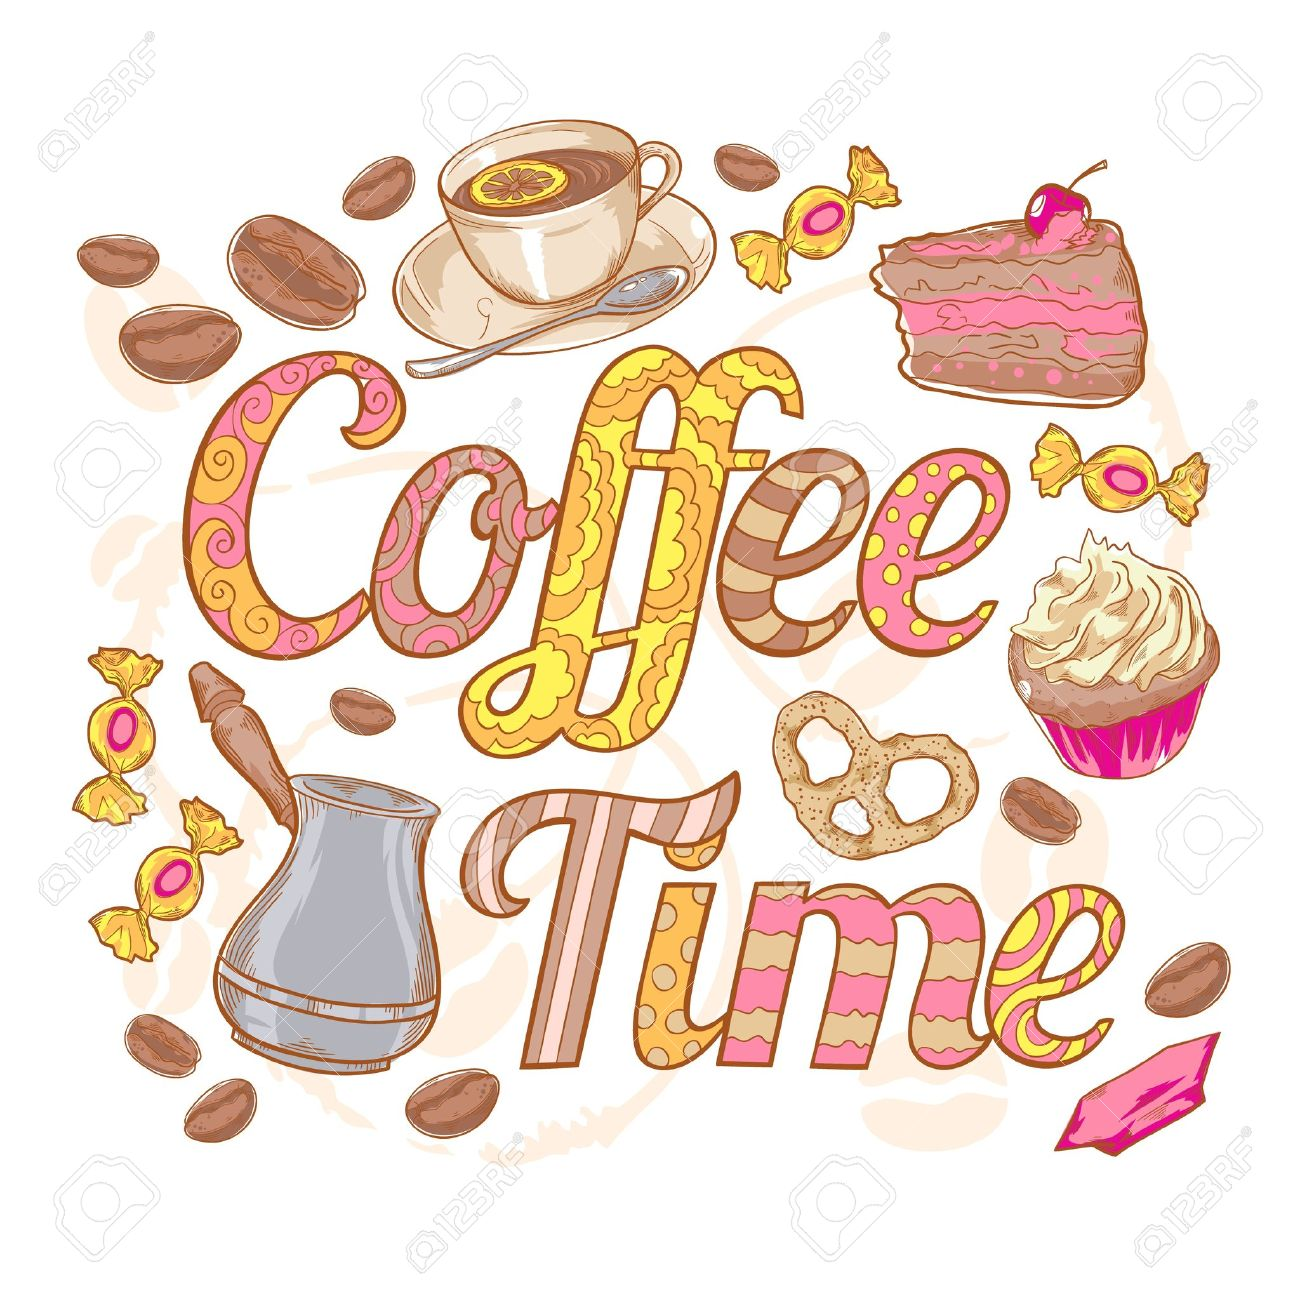 Coffee time colorful invitation card with sweets, beans and swirl font - 20107247